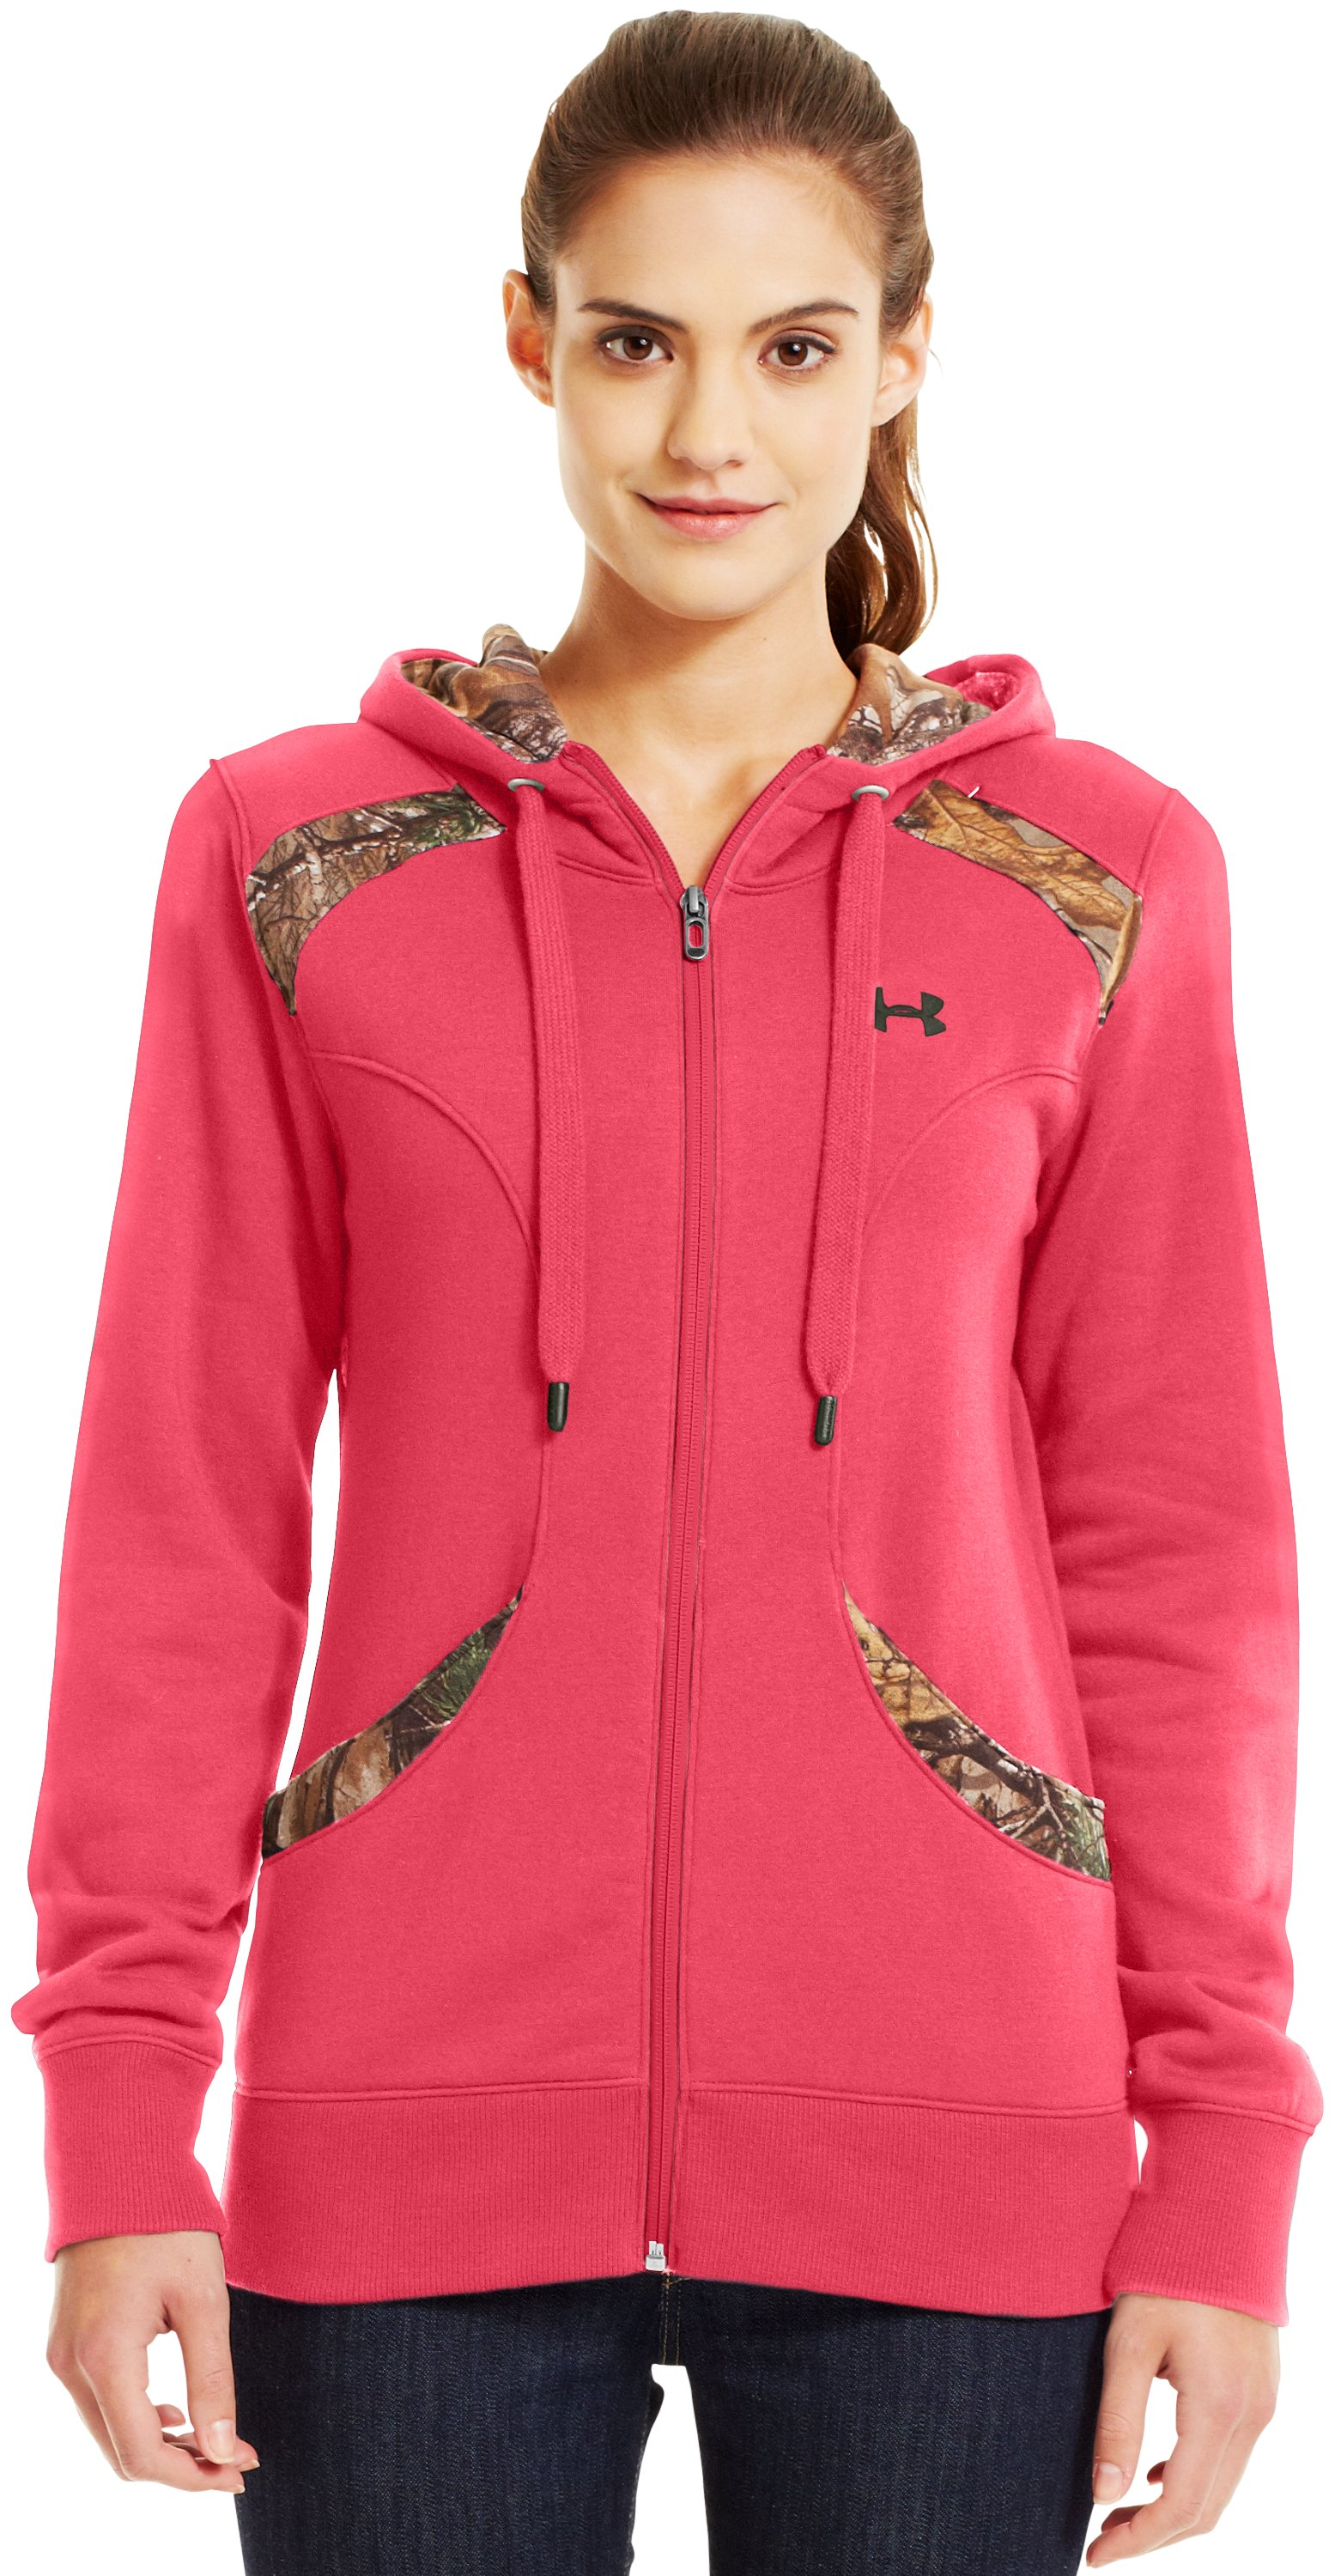 Women's UA Charged Cotton® Storm Full Zip Hoodie, Perfection, zoomed image